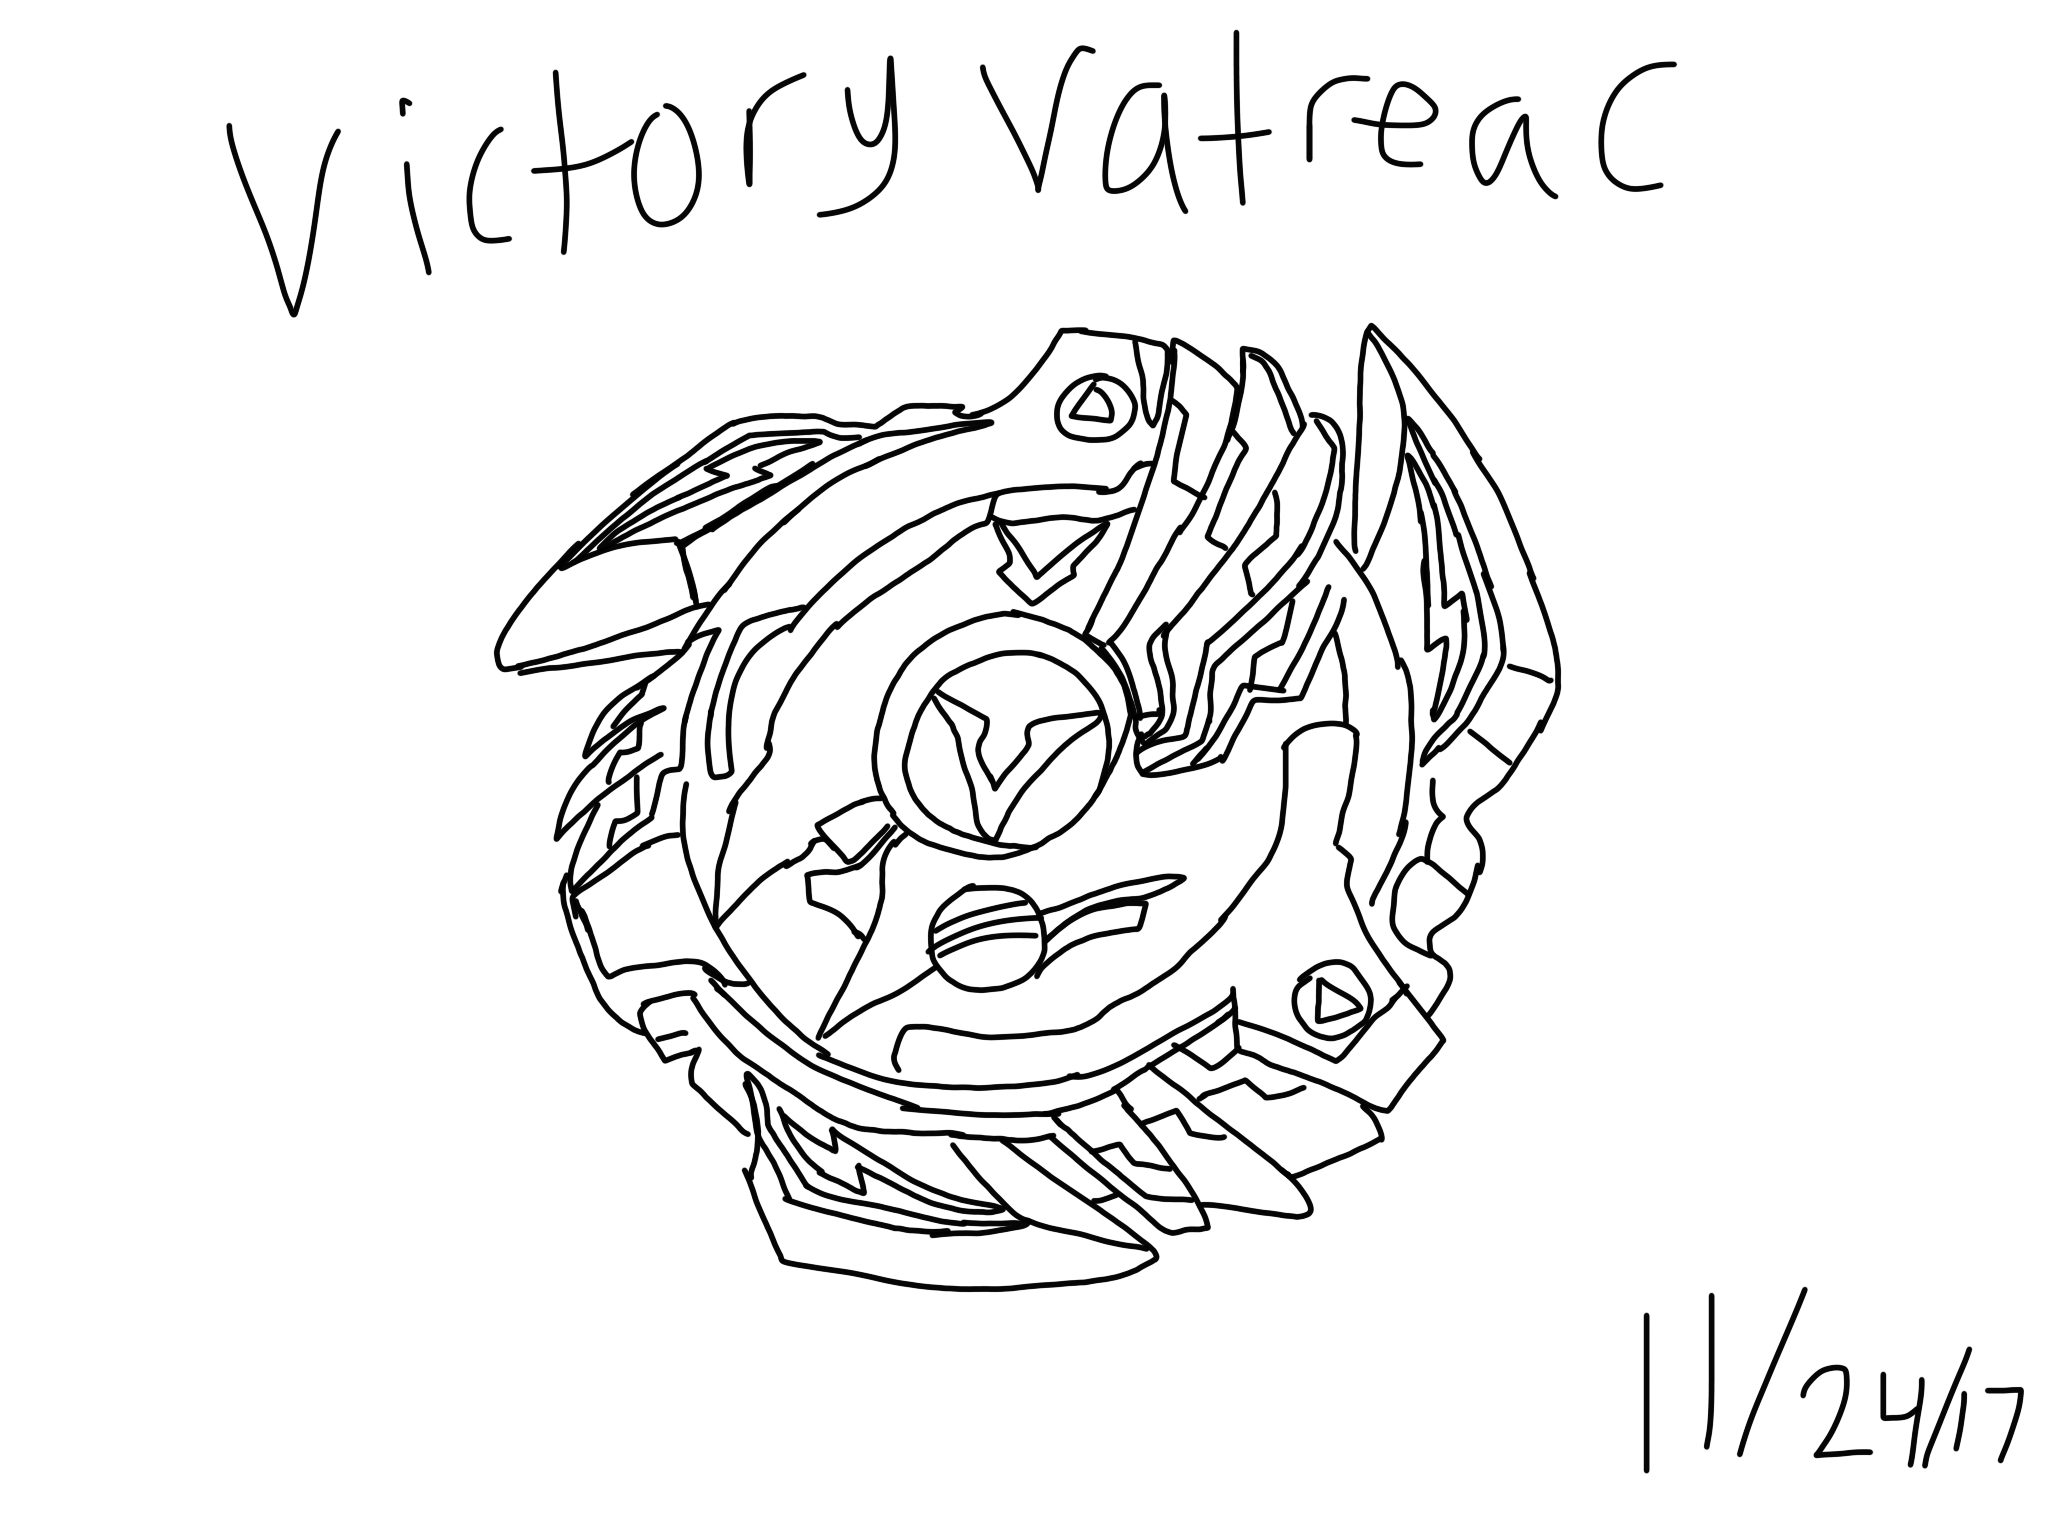 Beyblade victory valtreac drawing by taylorliufilmsart on for Beyblade burst coloring pages